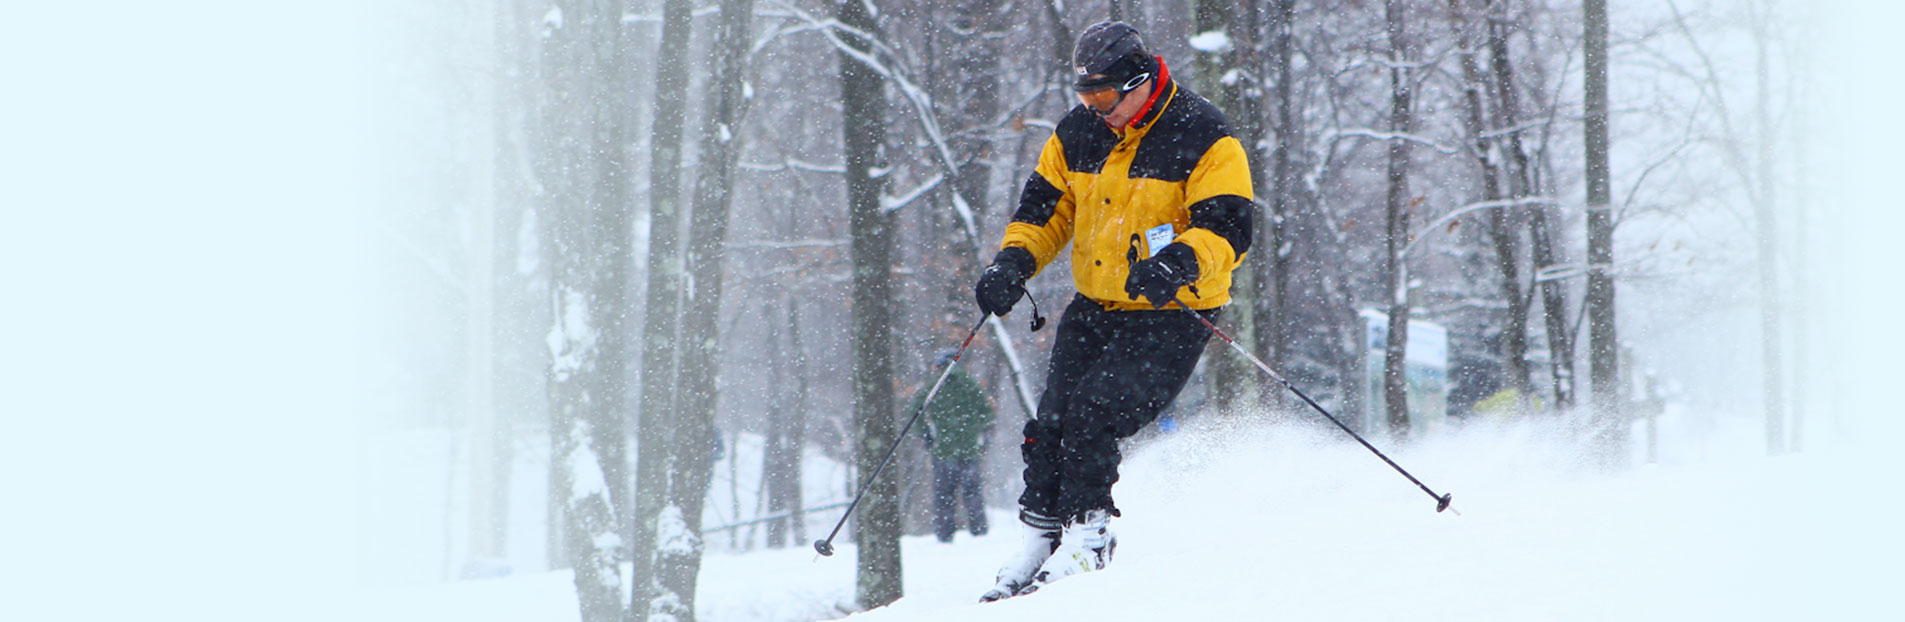 THE GREAT OUTDOORS - Pocono Lifestyle